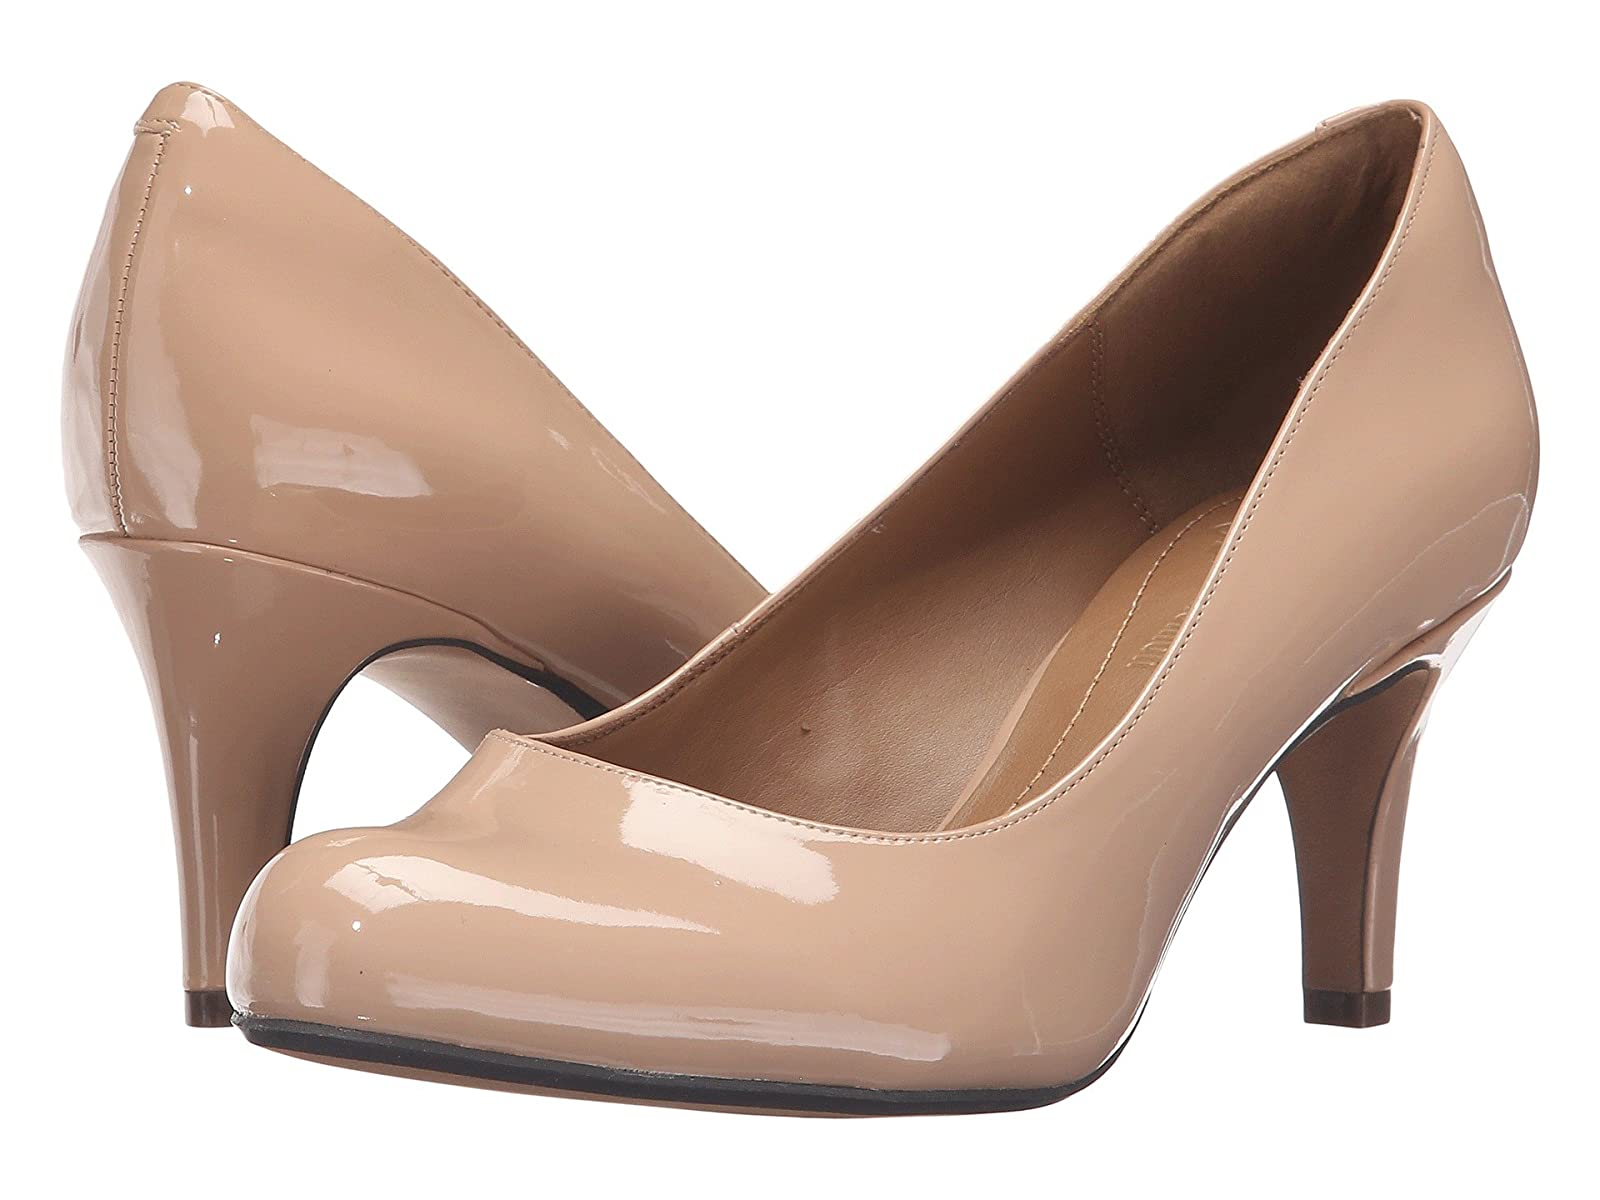 Clarks Arista AbeCheap and distinctive eye-catching shoes